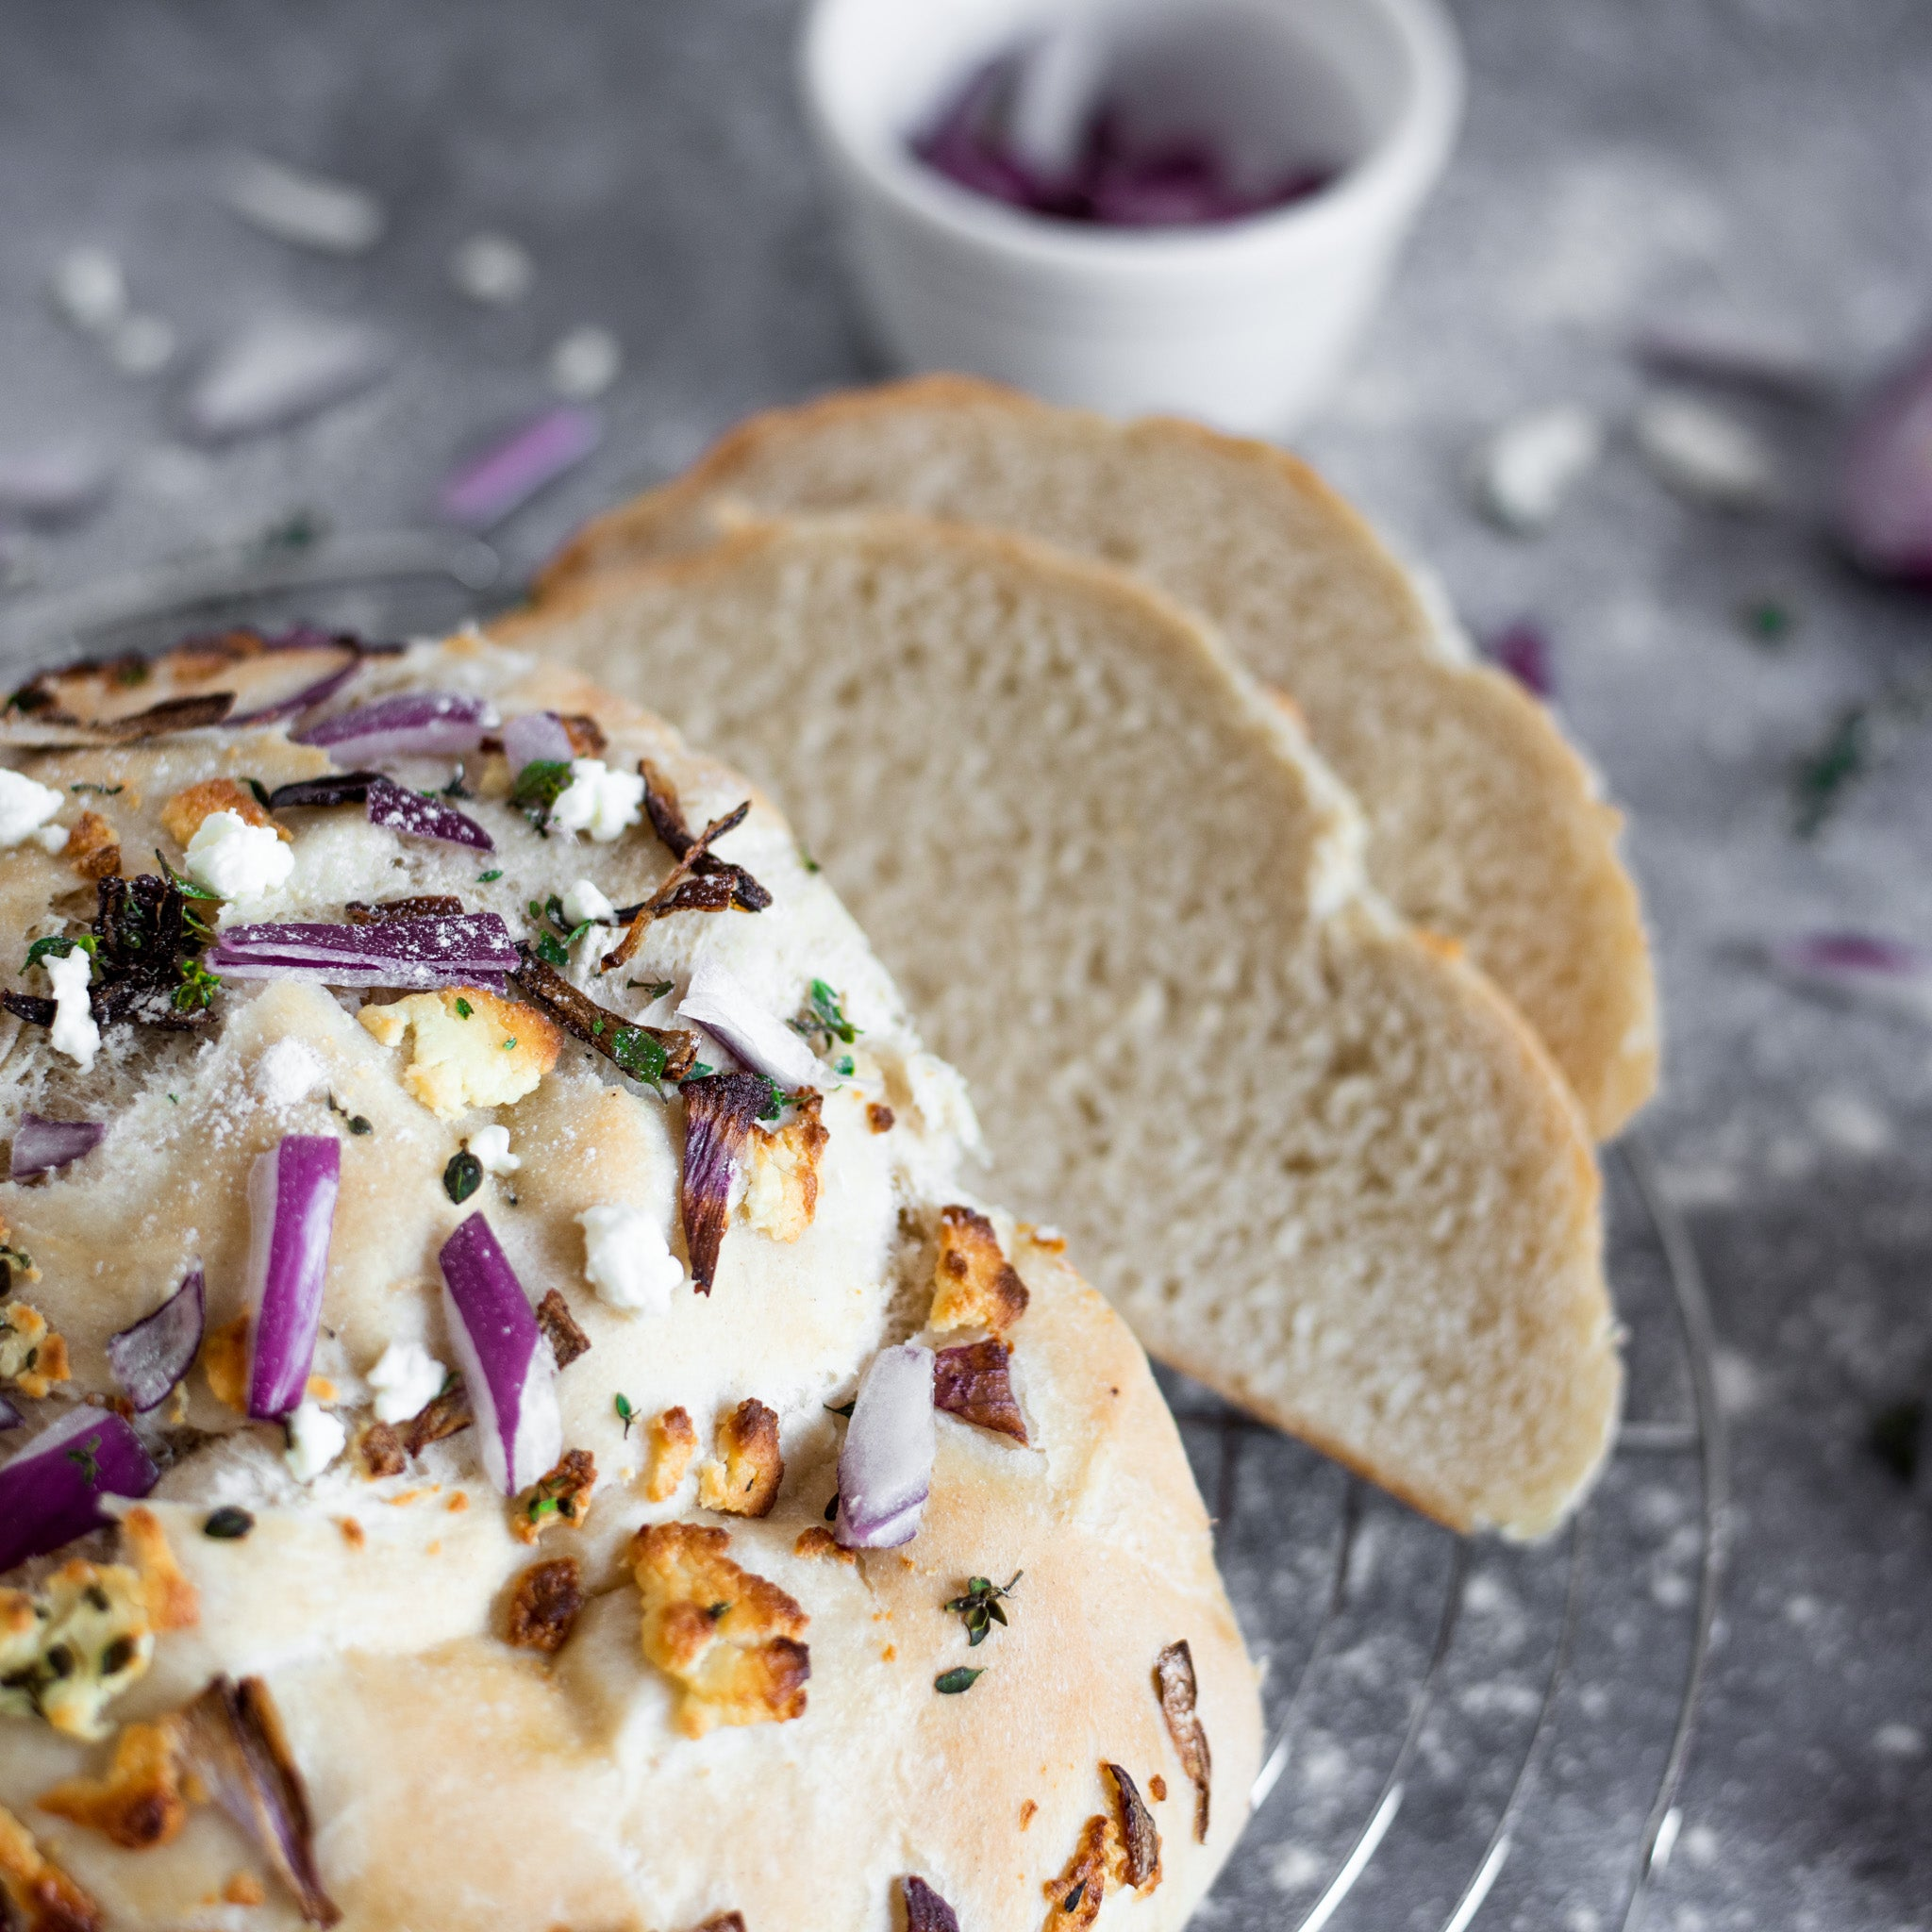 Goat-s-Cheese-and-Caramelised-Onion-Bread-by-Allinson-s-(10).jpg